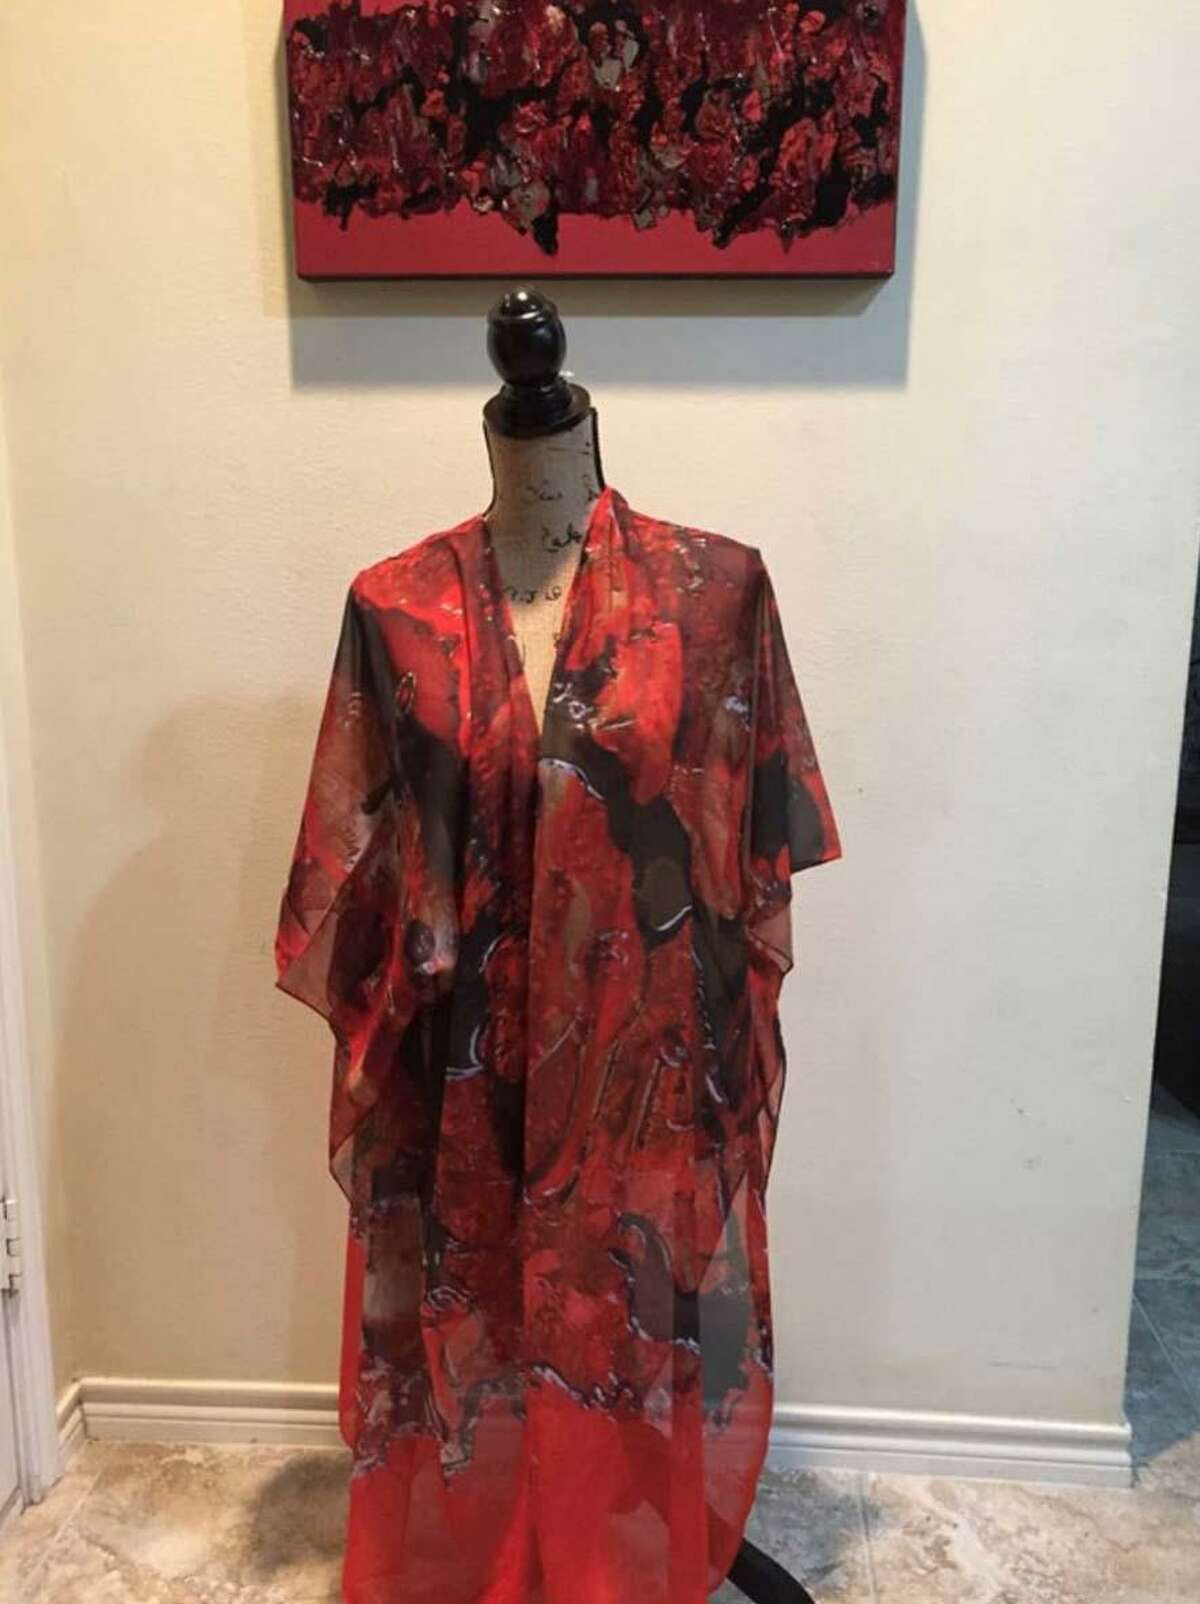 This garment by artist Marilyn Lowry illustrates the unique pieces that will be available at the CAL Wearable Art & Home Decor Trunk Show.